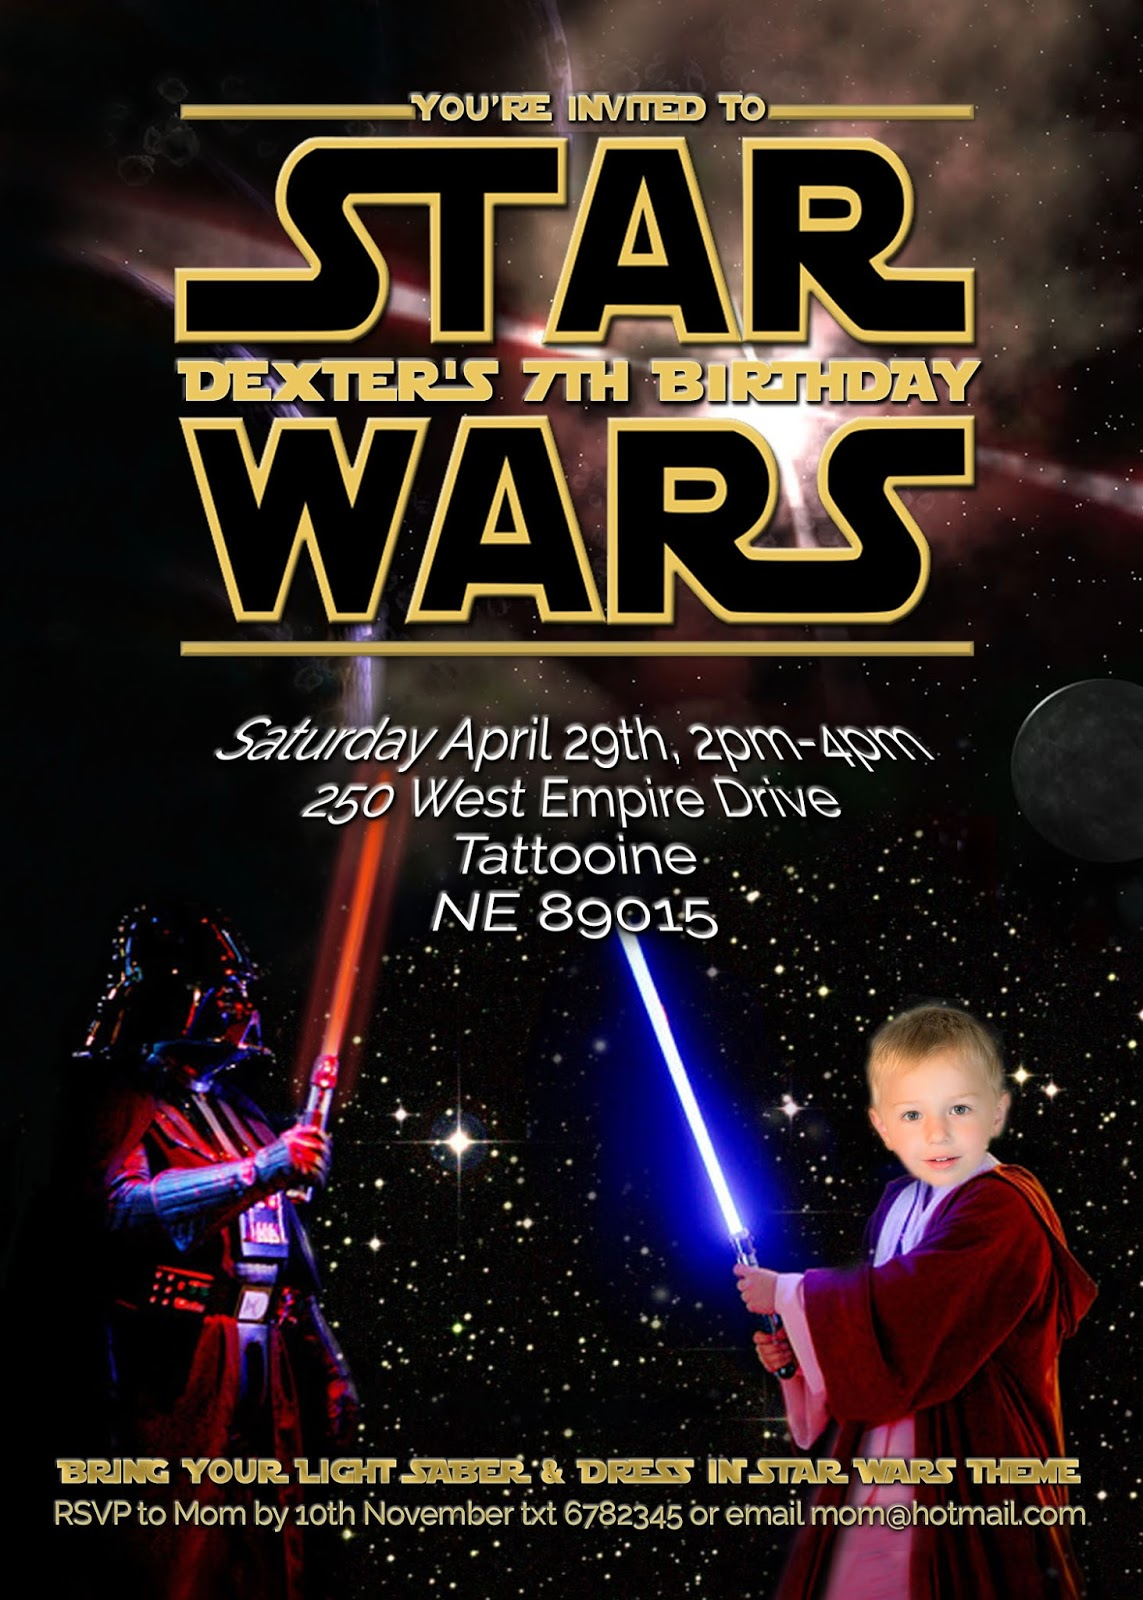 FREE Kids Party Invitations Star Wars Party Invitation selfedit